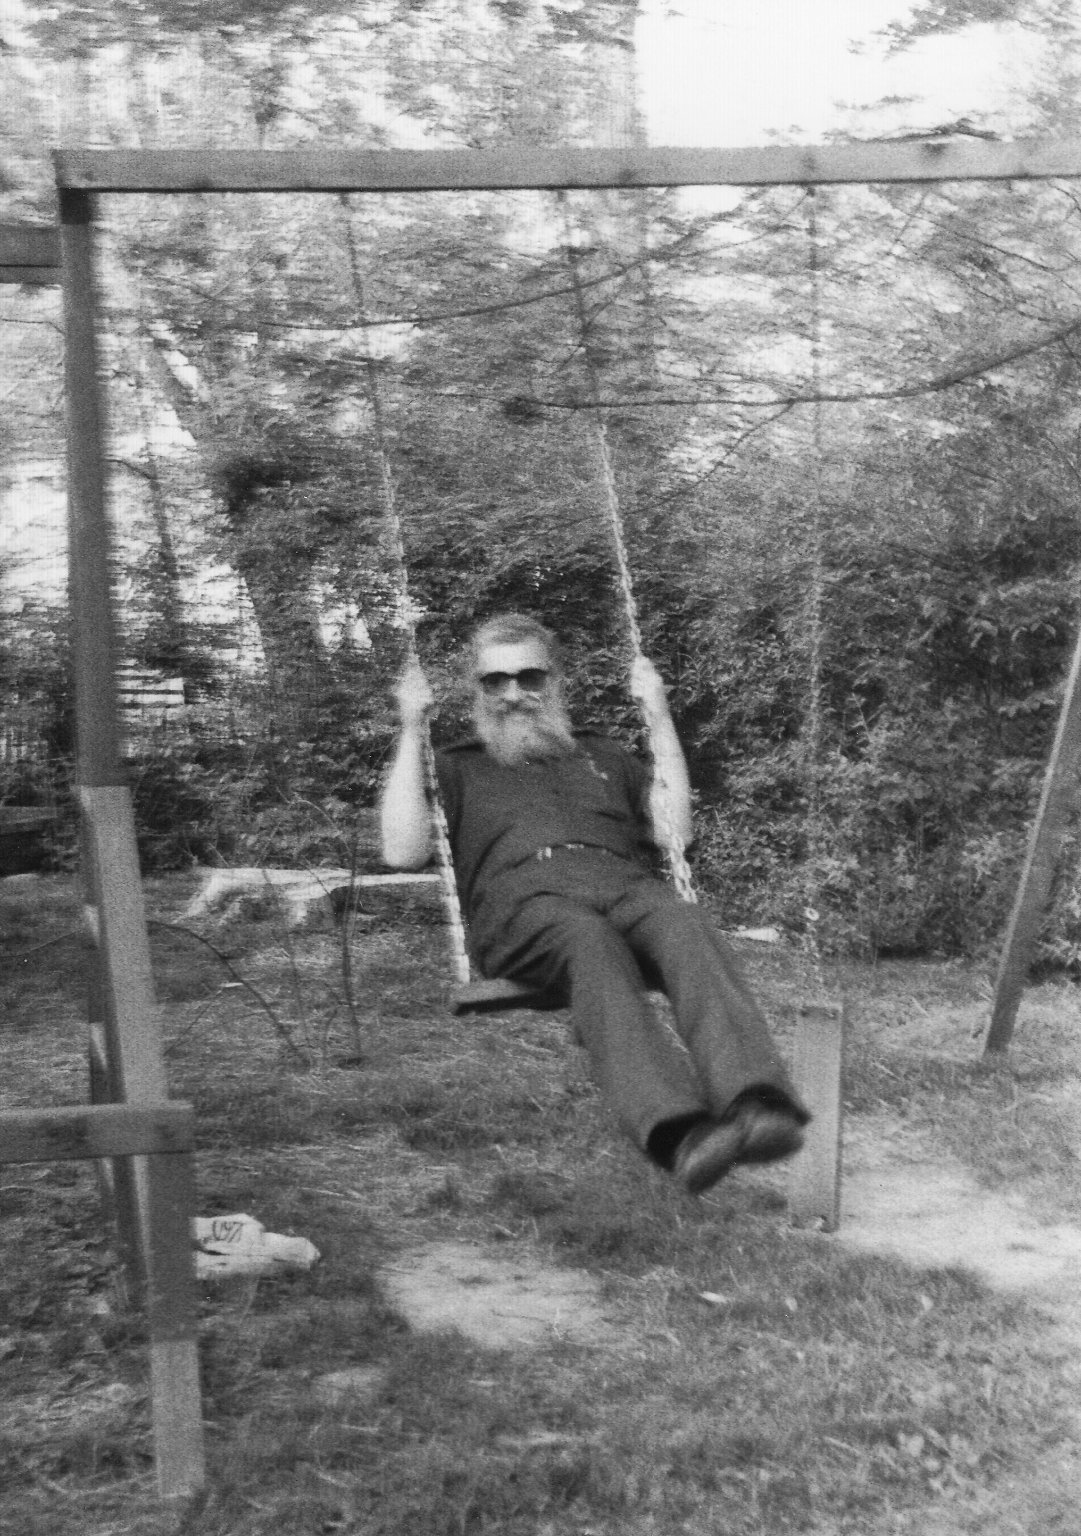 Rabbi Zalman Schachter on a swing, Fall 1990.